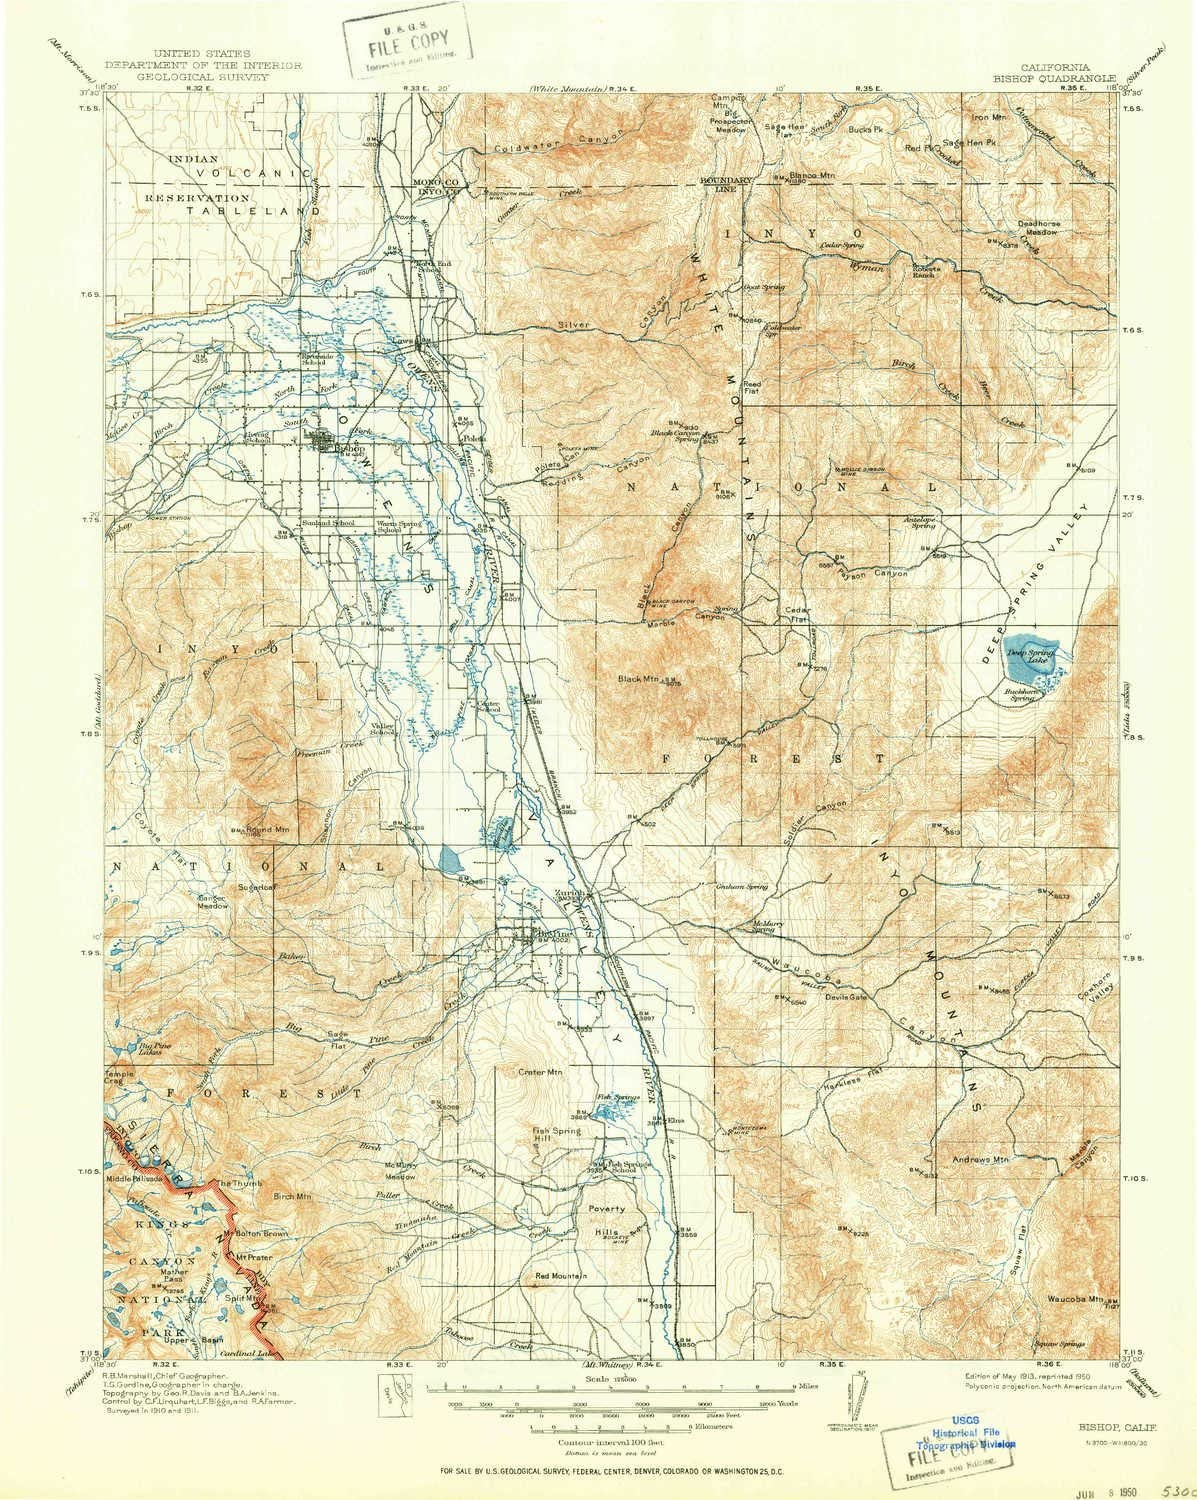 YellowMaps Bishop CA topo Nashville-Davidson Mall Challenge the lowest price map 1:125000 H Scale Minute X 30